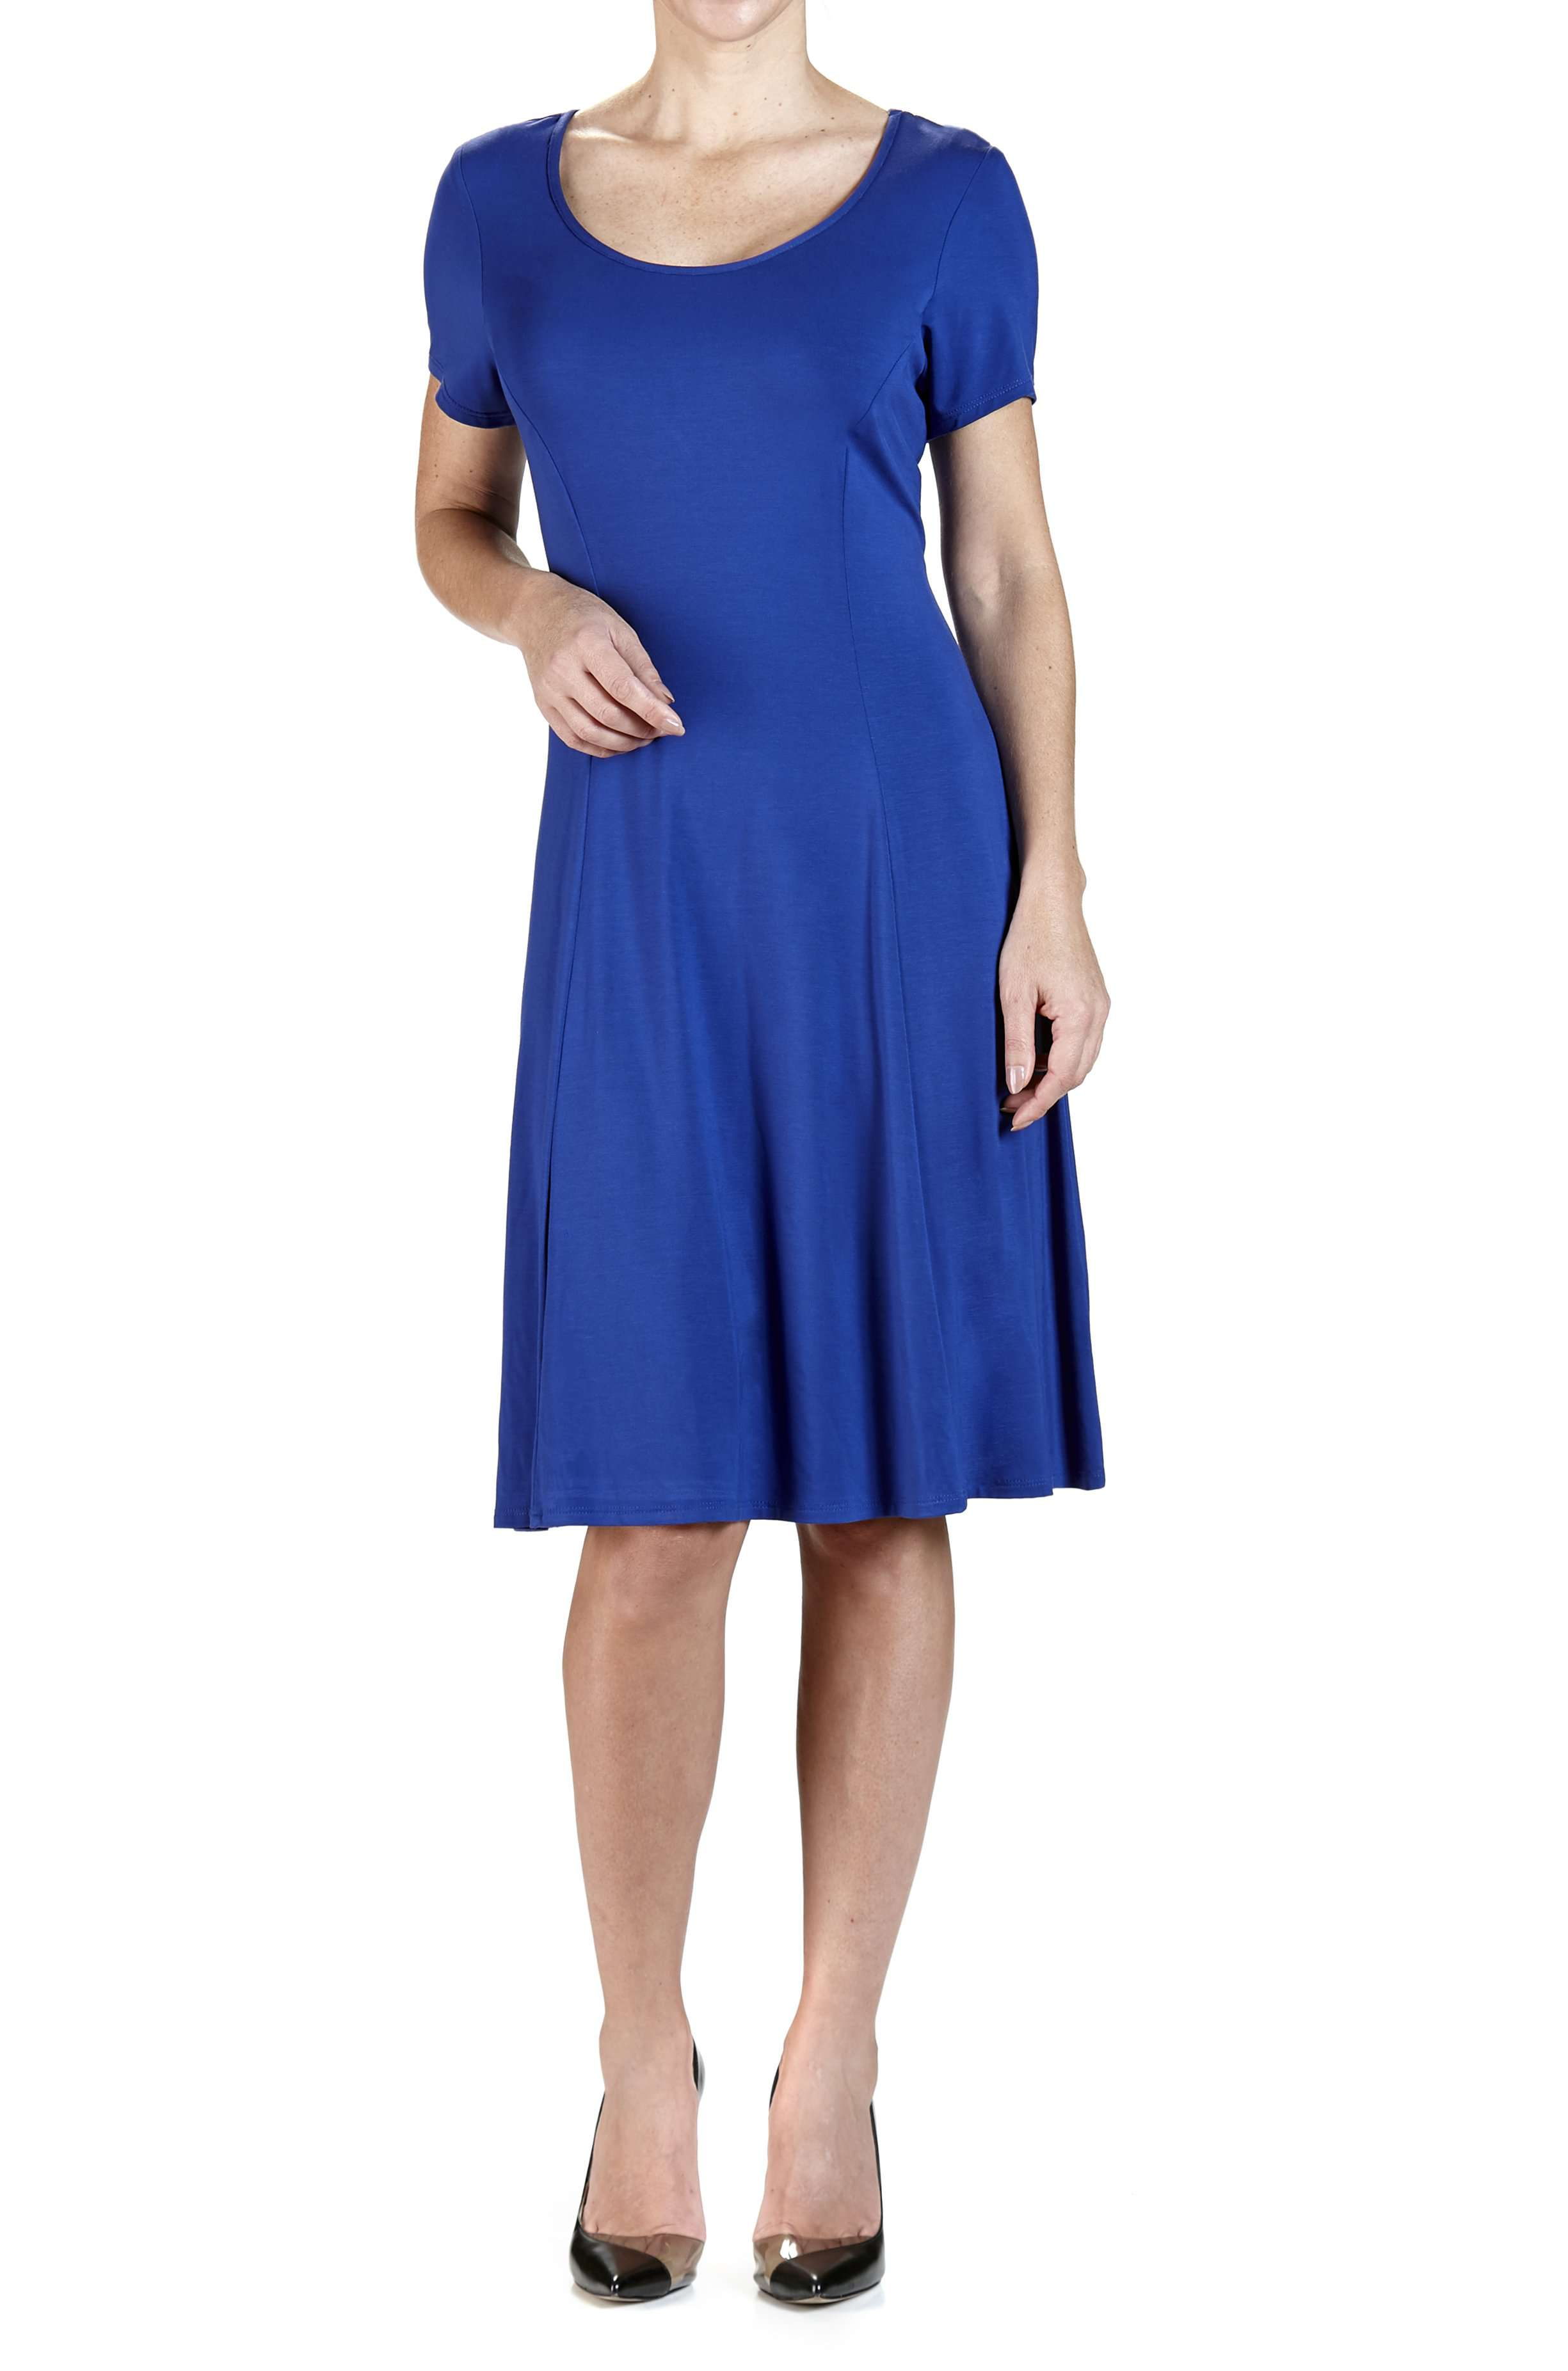 Women's Royal Blue Designer Dress Now 70 Off-Shop Local - Yvonne Marie - Yvonne Marie